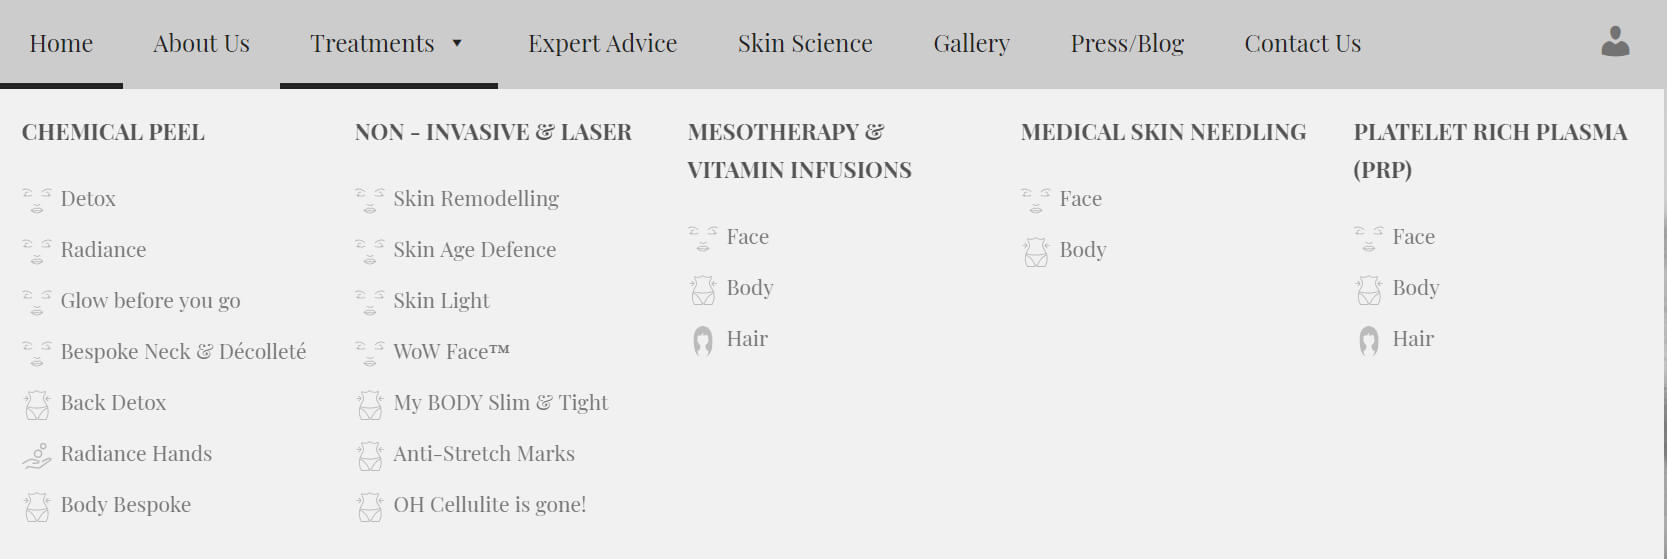 Special Treatments Menu Web Design And Implementation